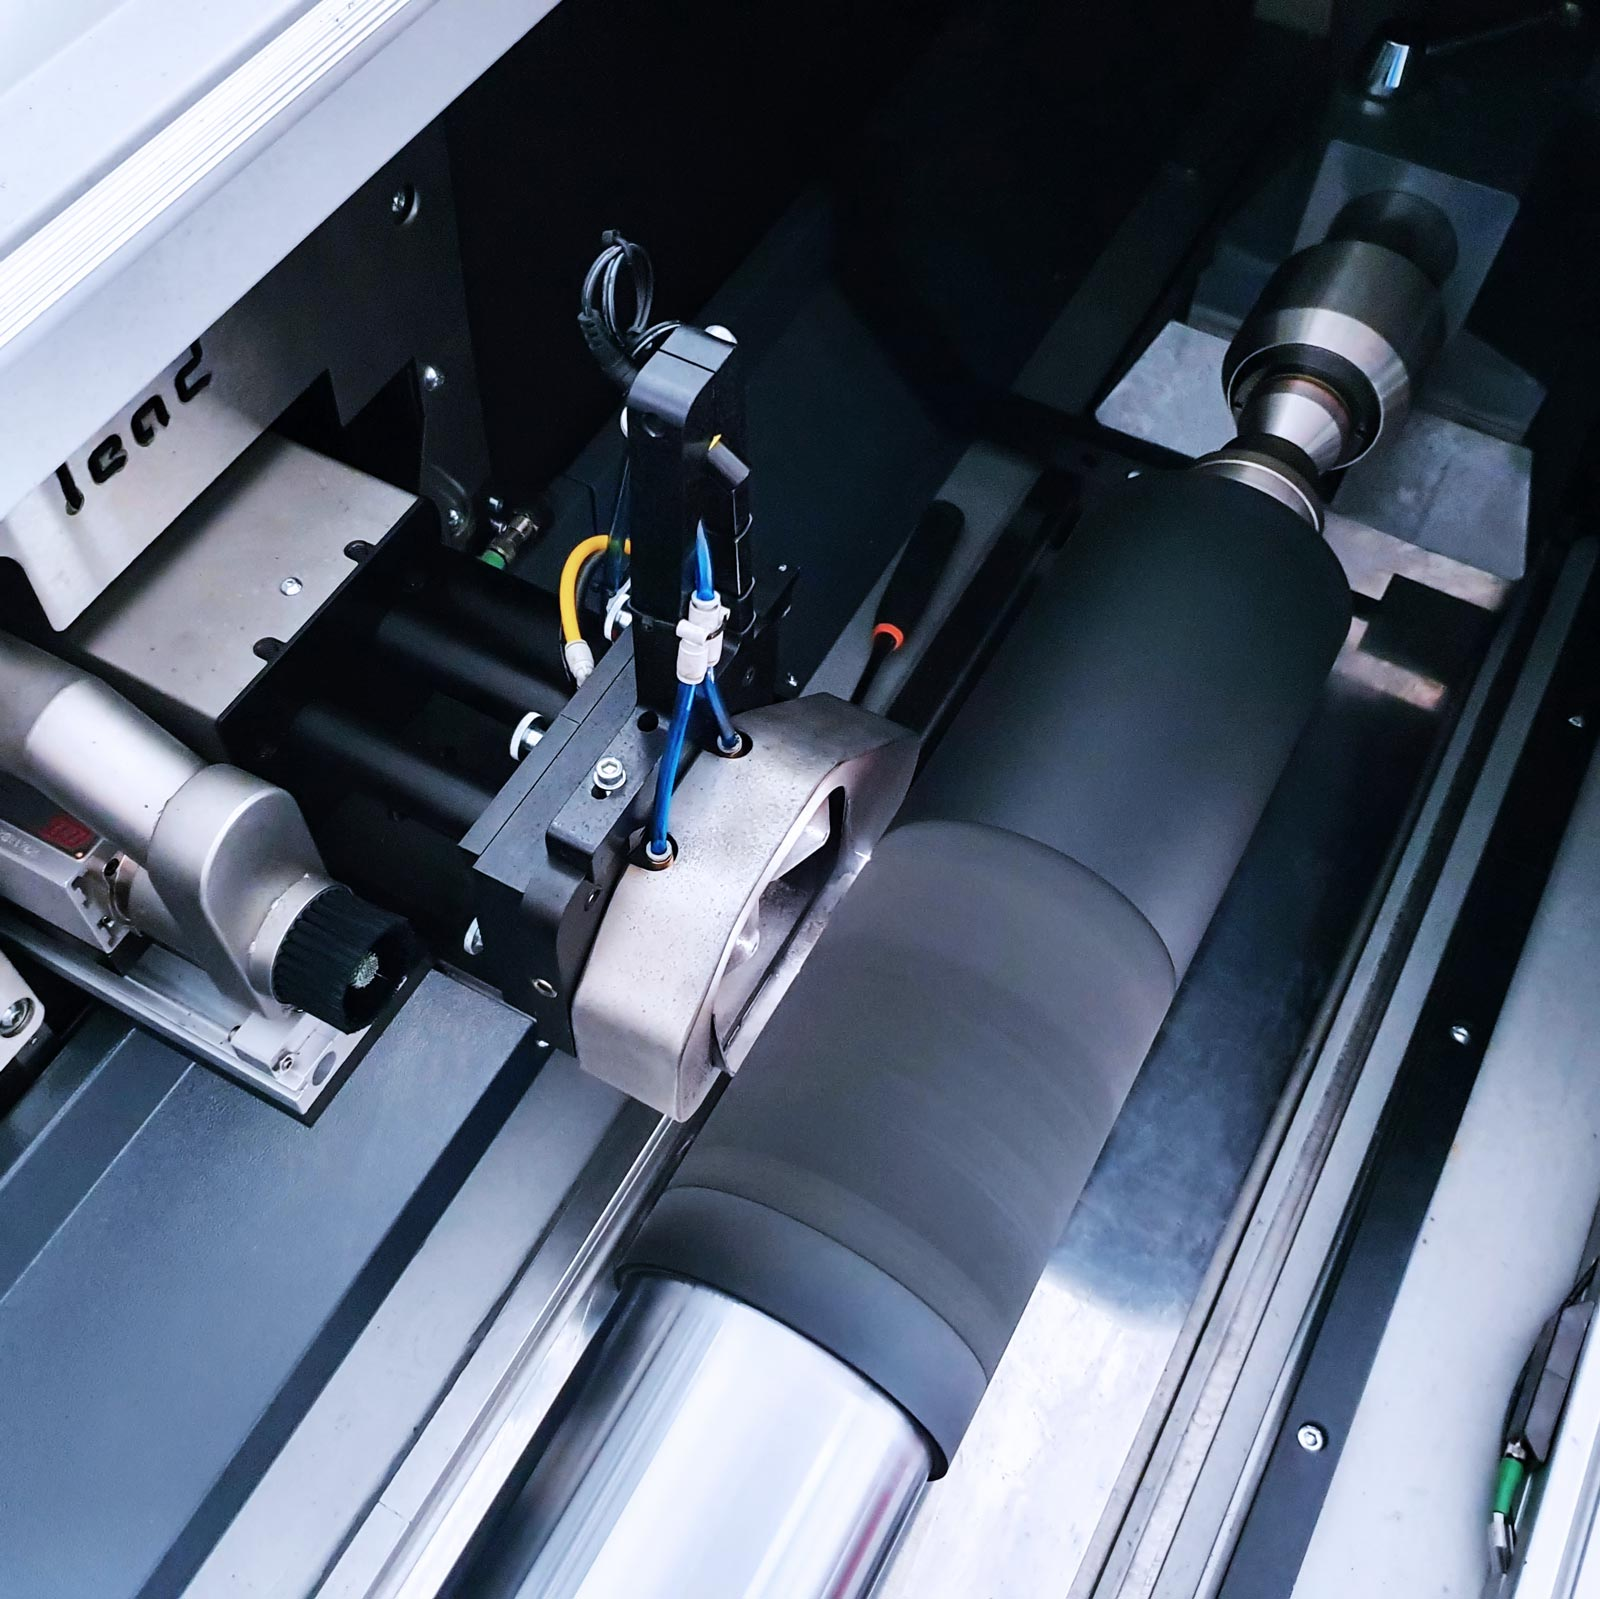 New DLE Lead Laser 3.1 Hybrid machine in the production process after testing 1